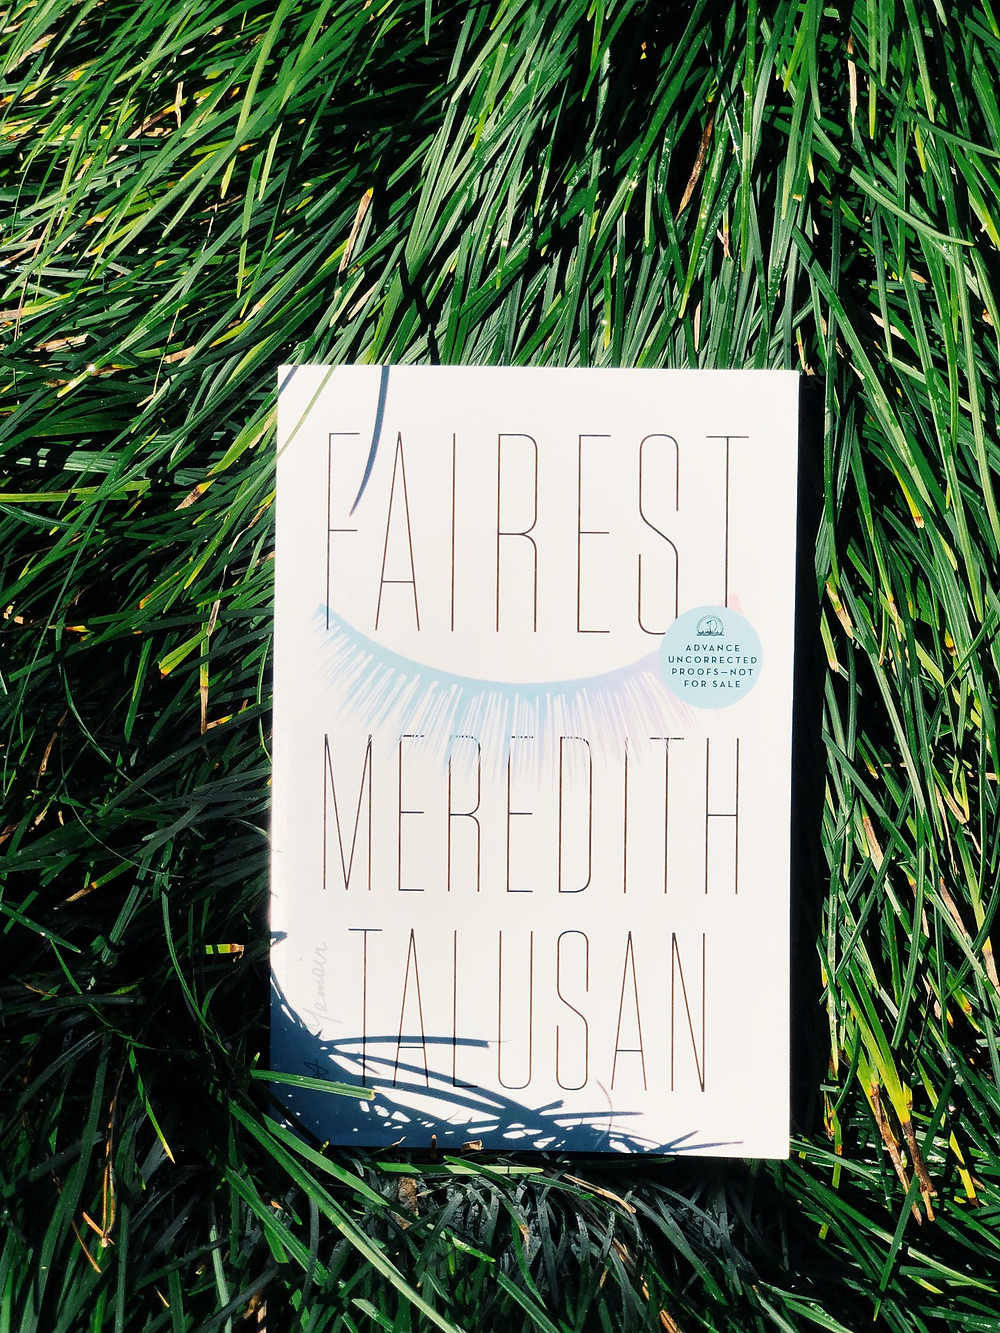 A copy of FAIREST lays in a bed of grass